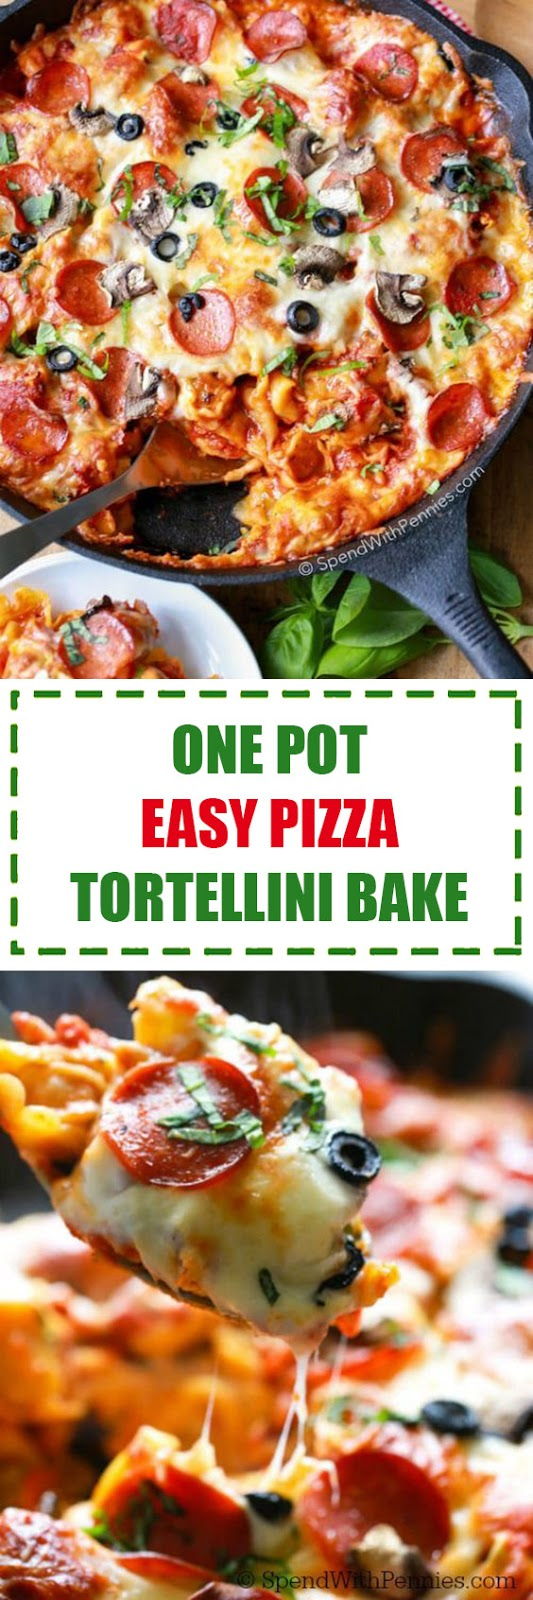 One Pot Easy Pizza Tortellini Bake